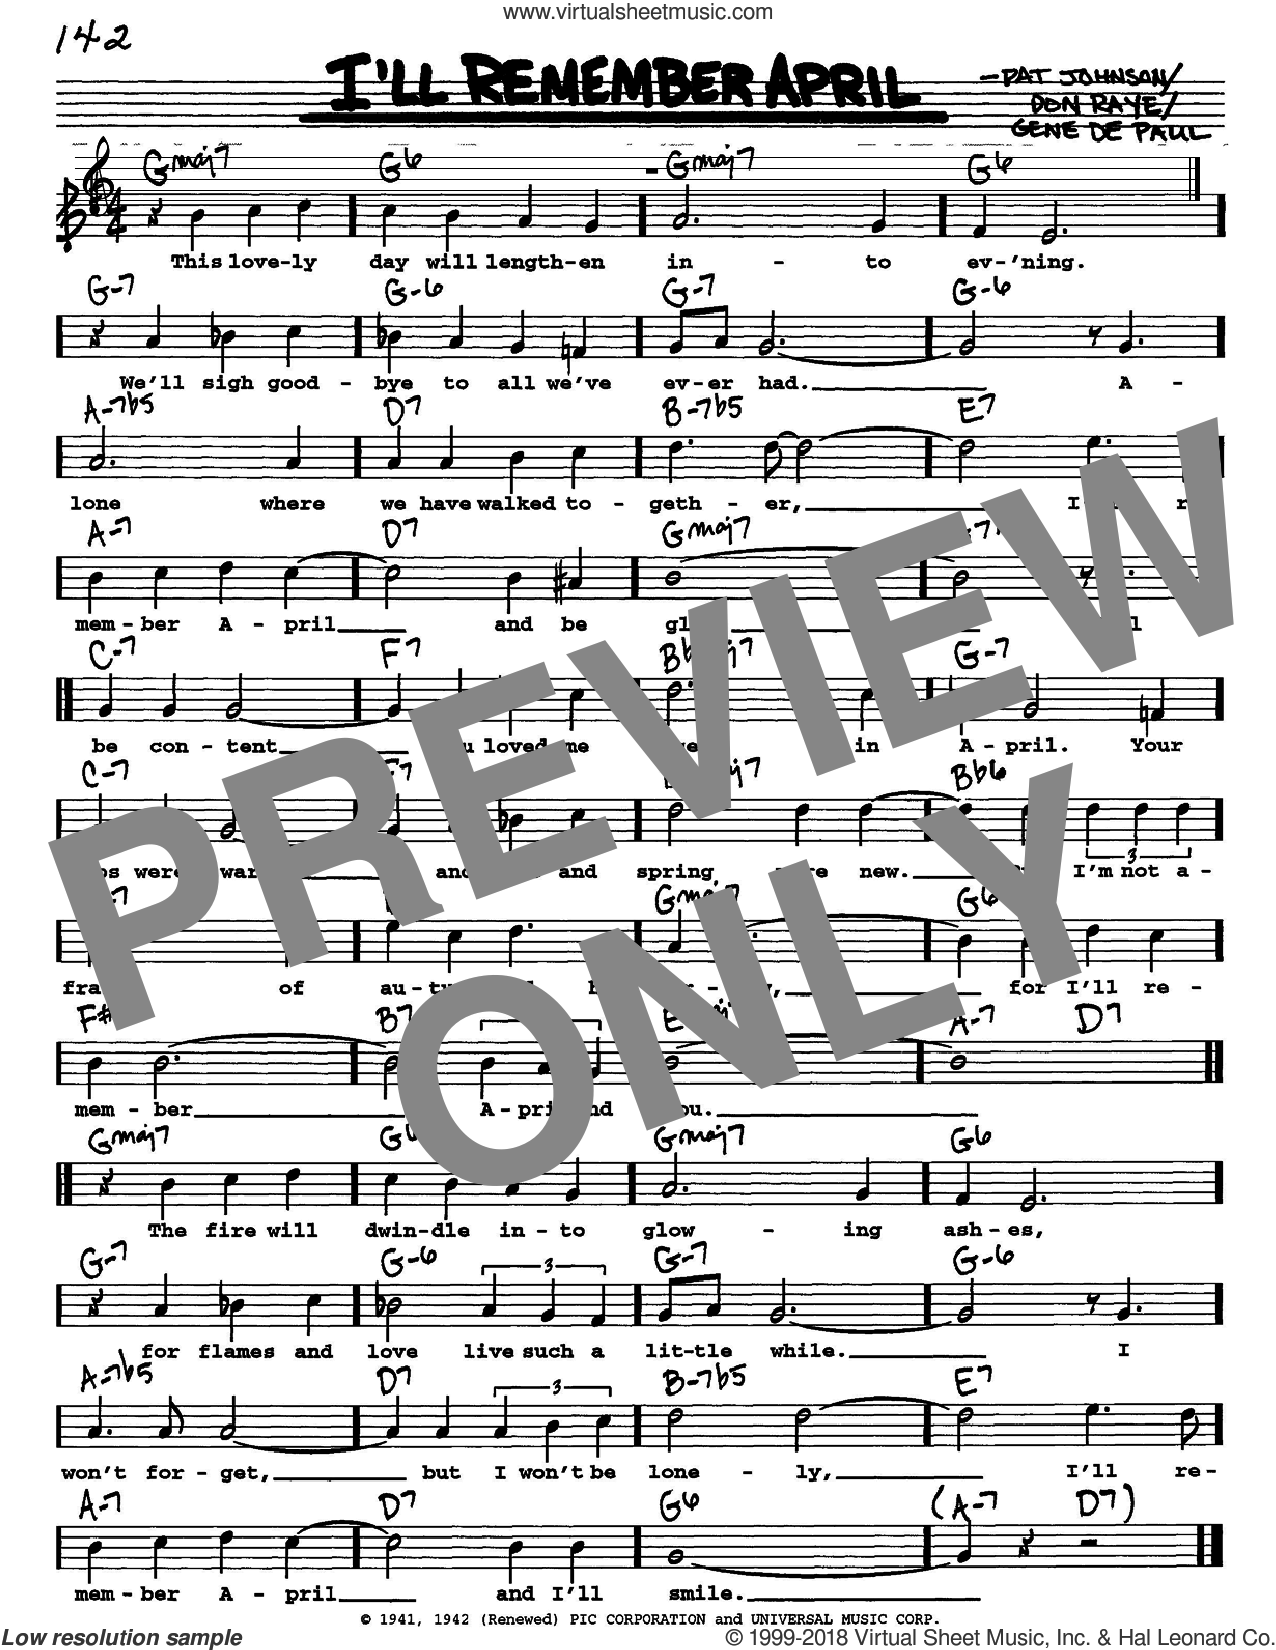 I'll Remember April sheet music for voice and other instruments (Vocal Volume 1) by Woody Herman, Don Raye and Gene DePaul, intermediate. Score Image Preview.